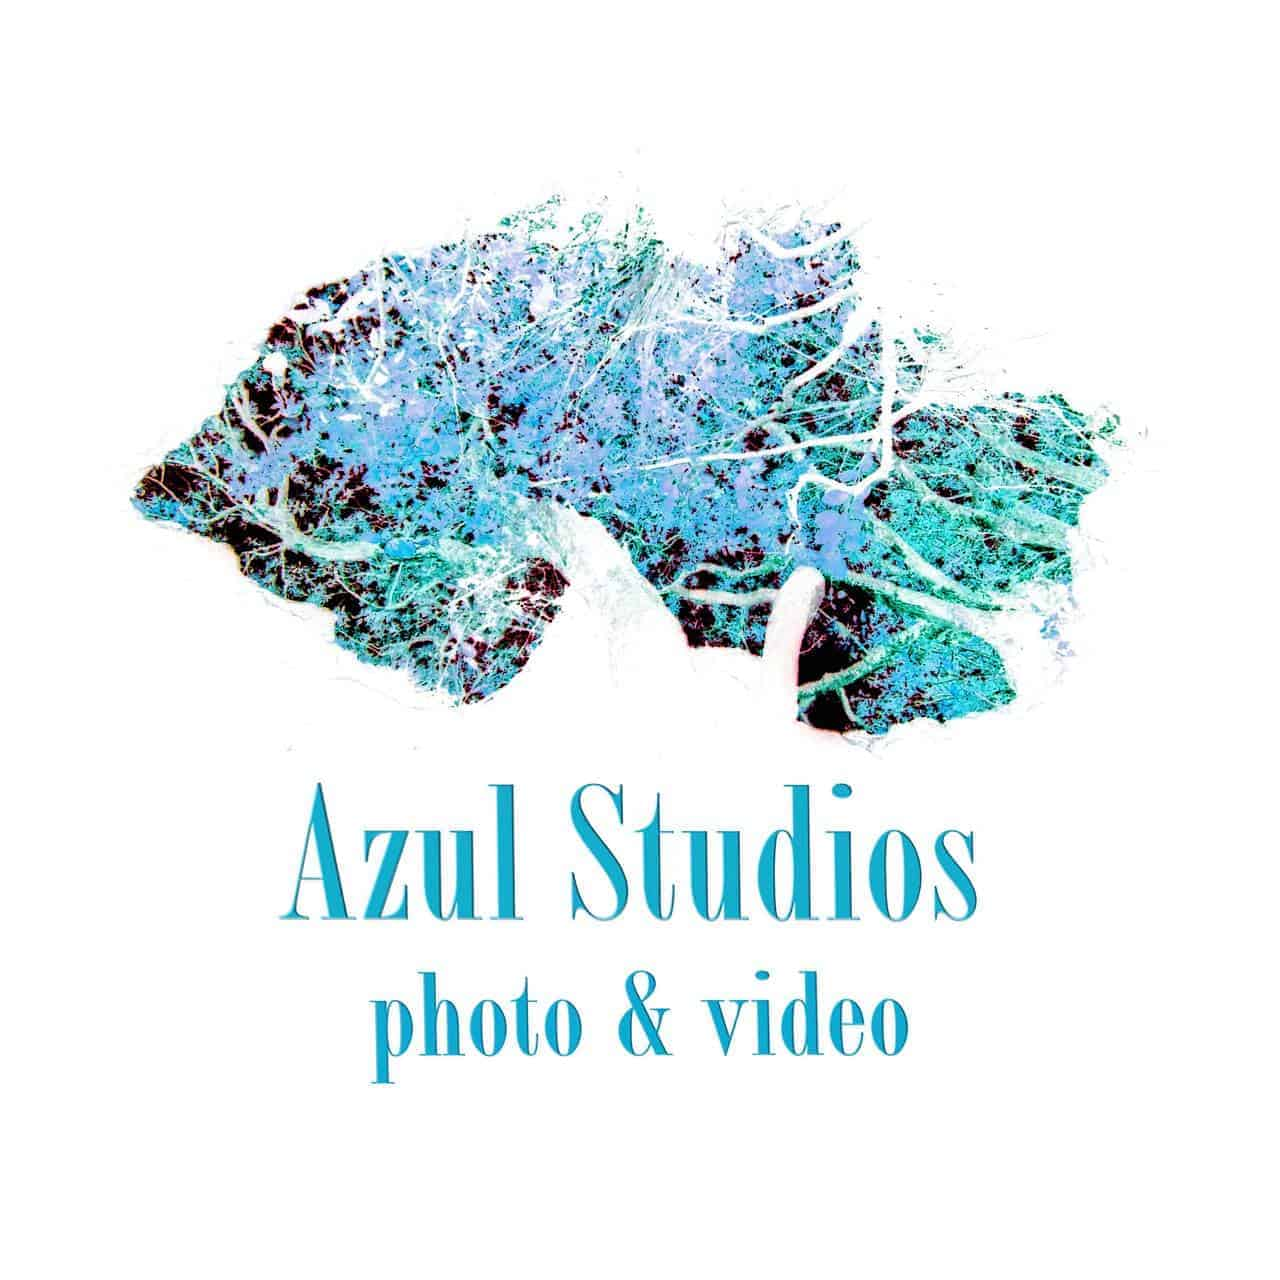 Azul Studios Photo And Video Page 1 Of 0